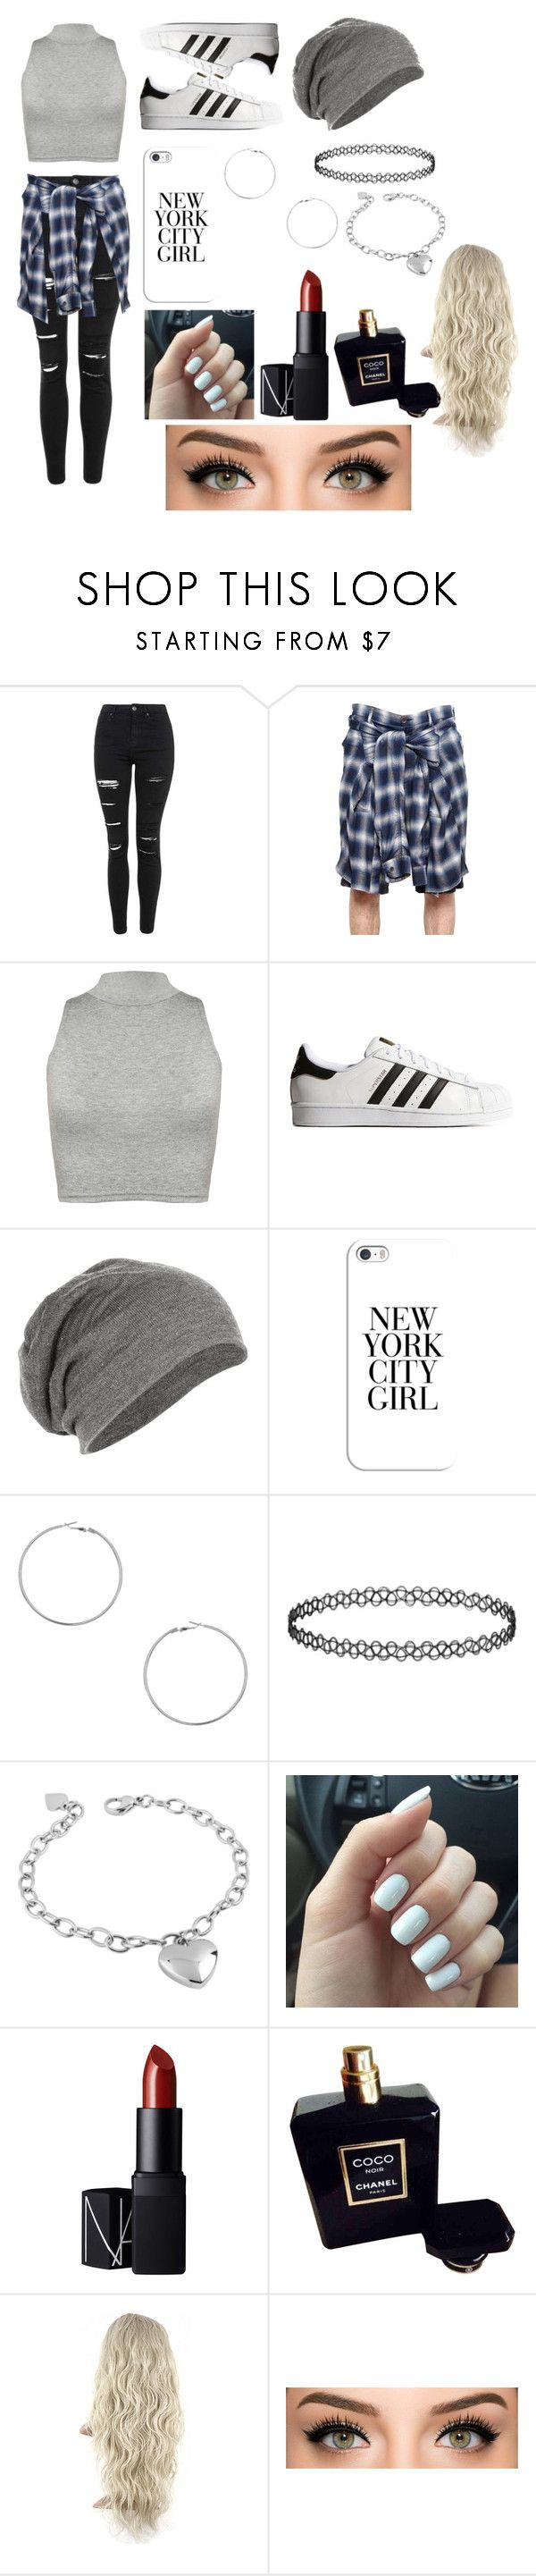 """New York City Girl"" by iamthequeenofwonderland ❤ liked on Polyvore featuring Topshop, Maison Mihara Yasuhiro, WearAll, adidas Originals, Casetify, Dorothy Perkins, West Coast Jewelry, NARS Cosmetics, Chanel and outfit"